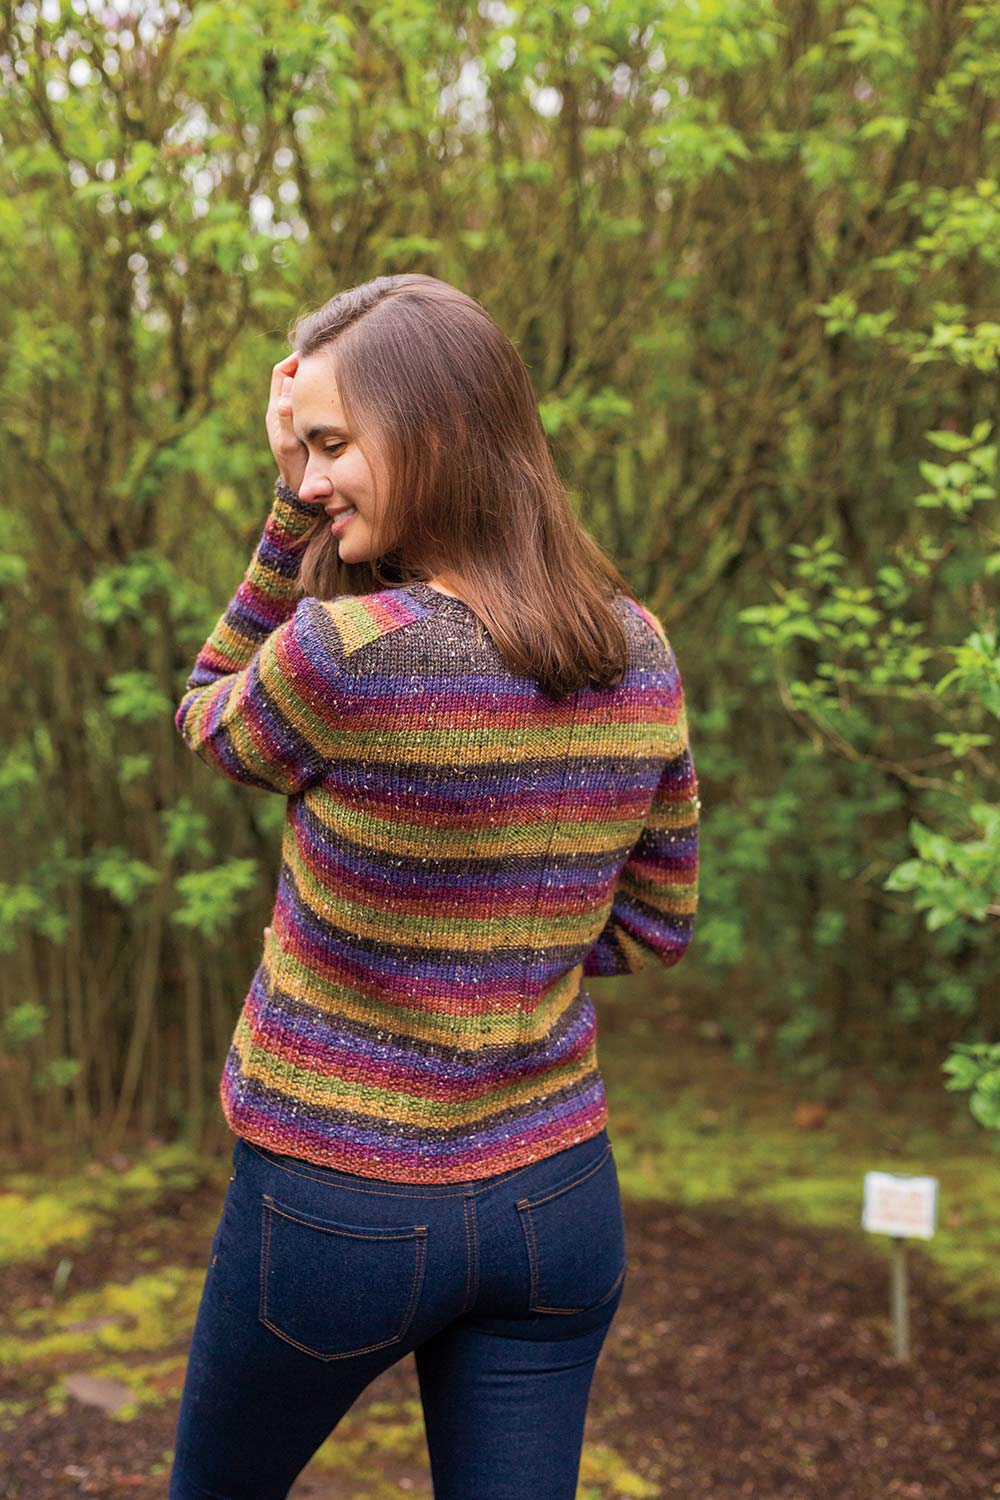 Back view of striped cardigan with saddle shoulder which is also striped. Upper back through shoulder and neck shaping is a solid colour which rest of sweater is striped.